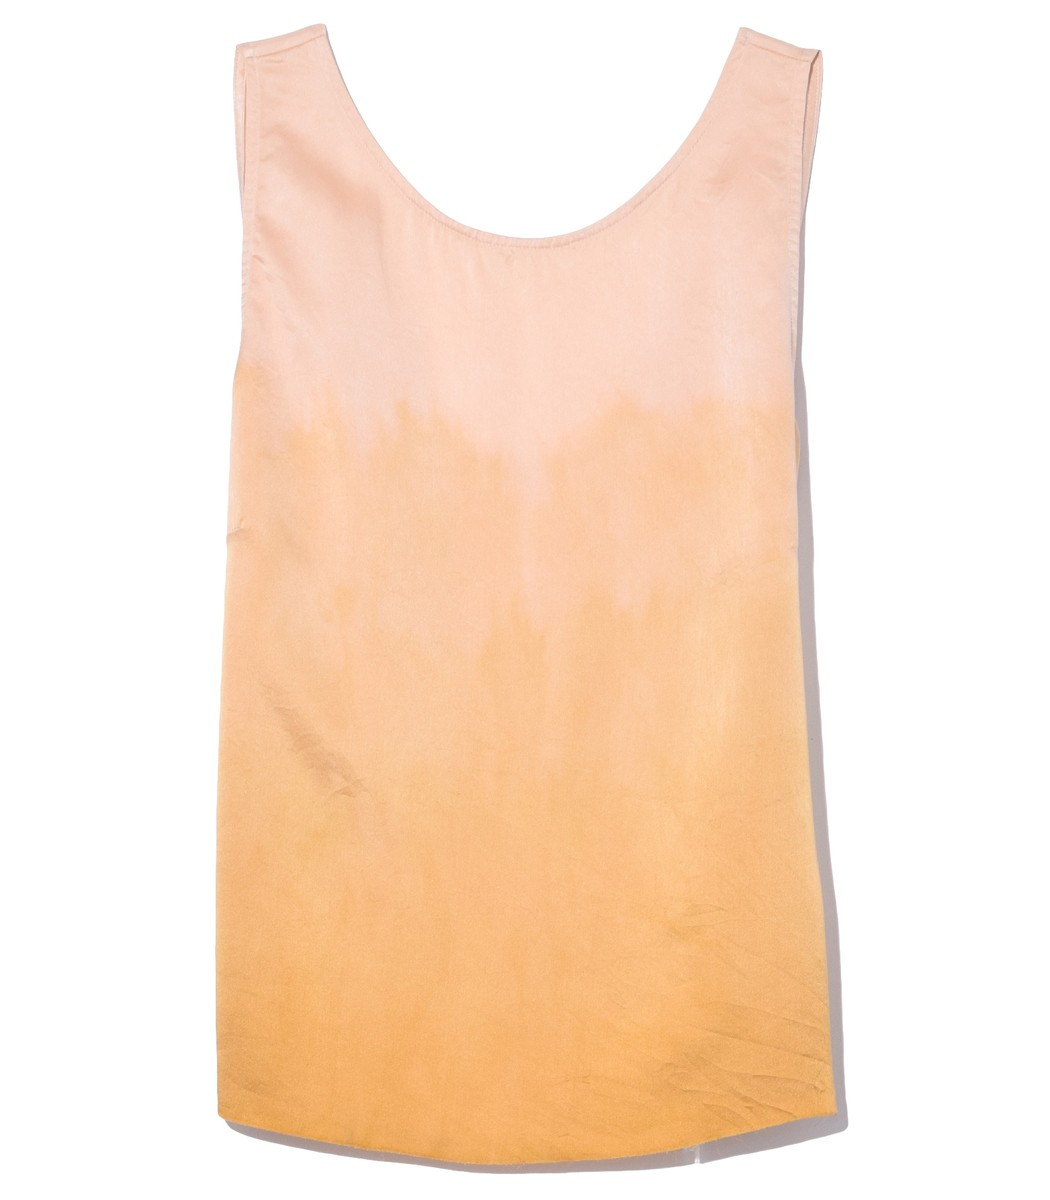 Raquel Allegra Tops Low Back Tank in Golden Sun Tie Dye